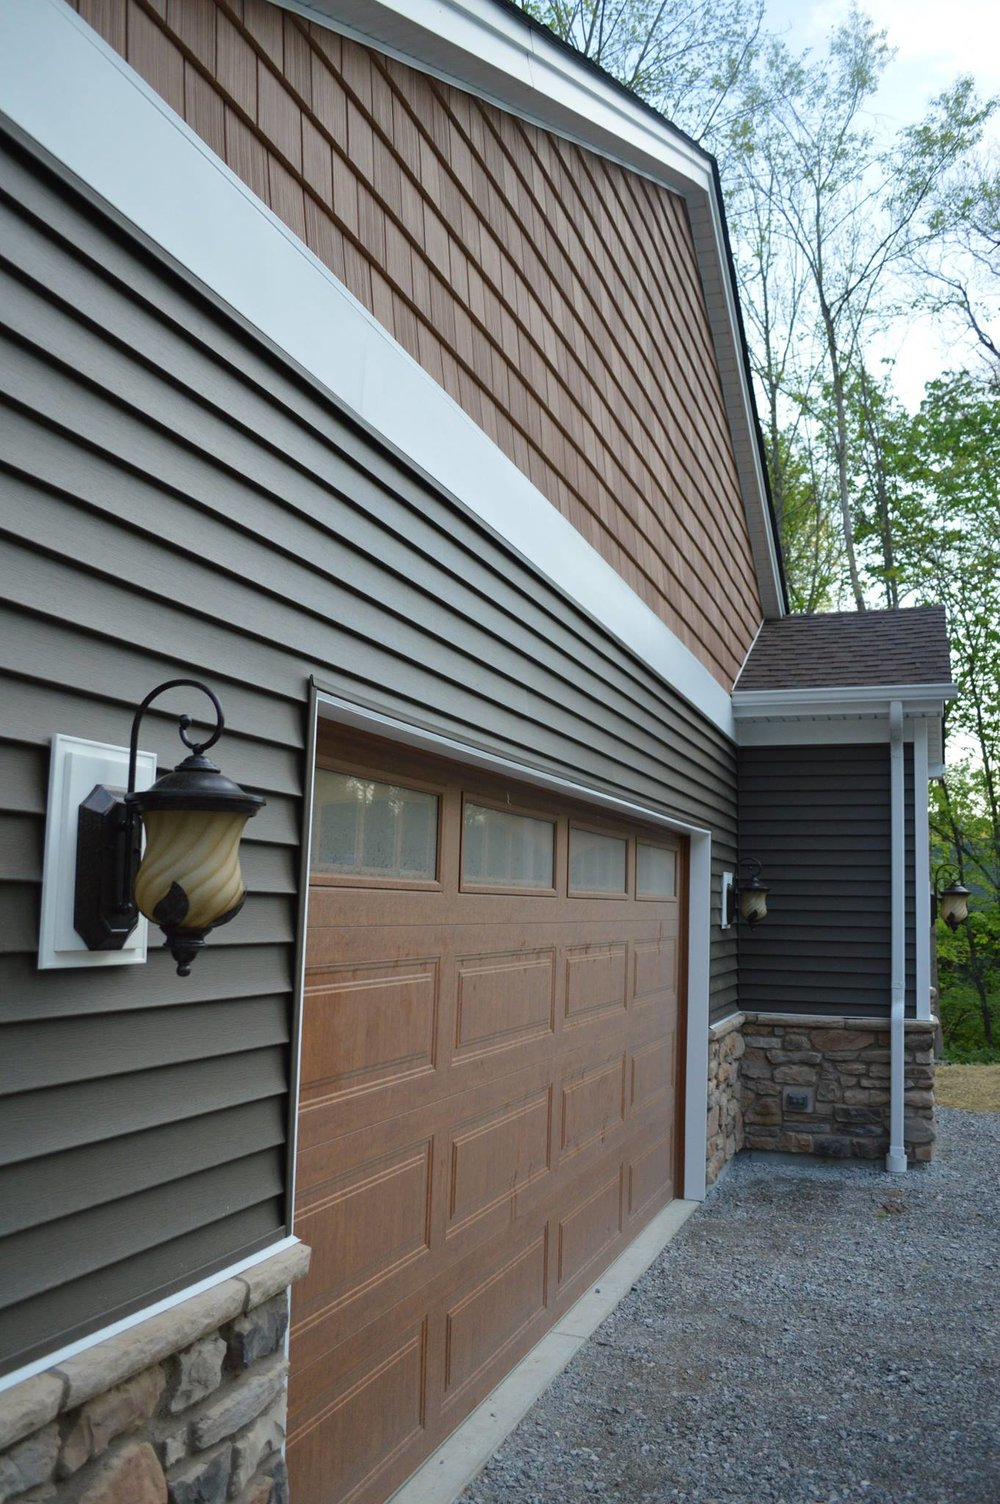 depot lynchburg of md me clifton photos repair doors tipsgarage wonderful near ideas anderson full cost about door garage doorallation home opener price experts size installation service